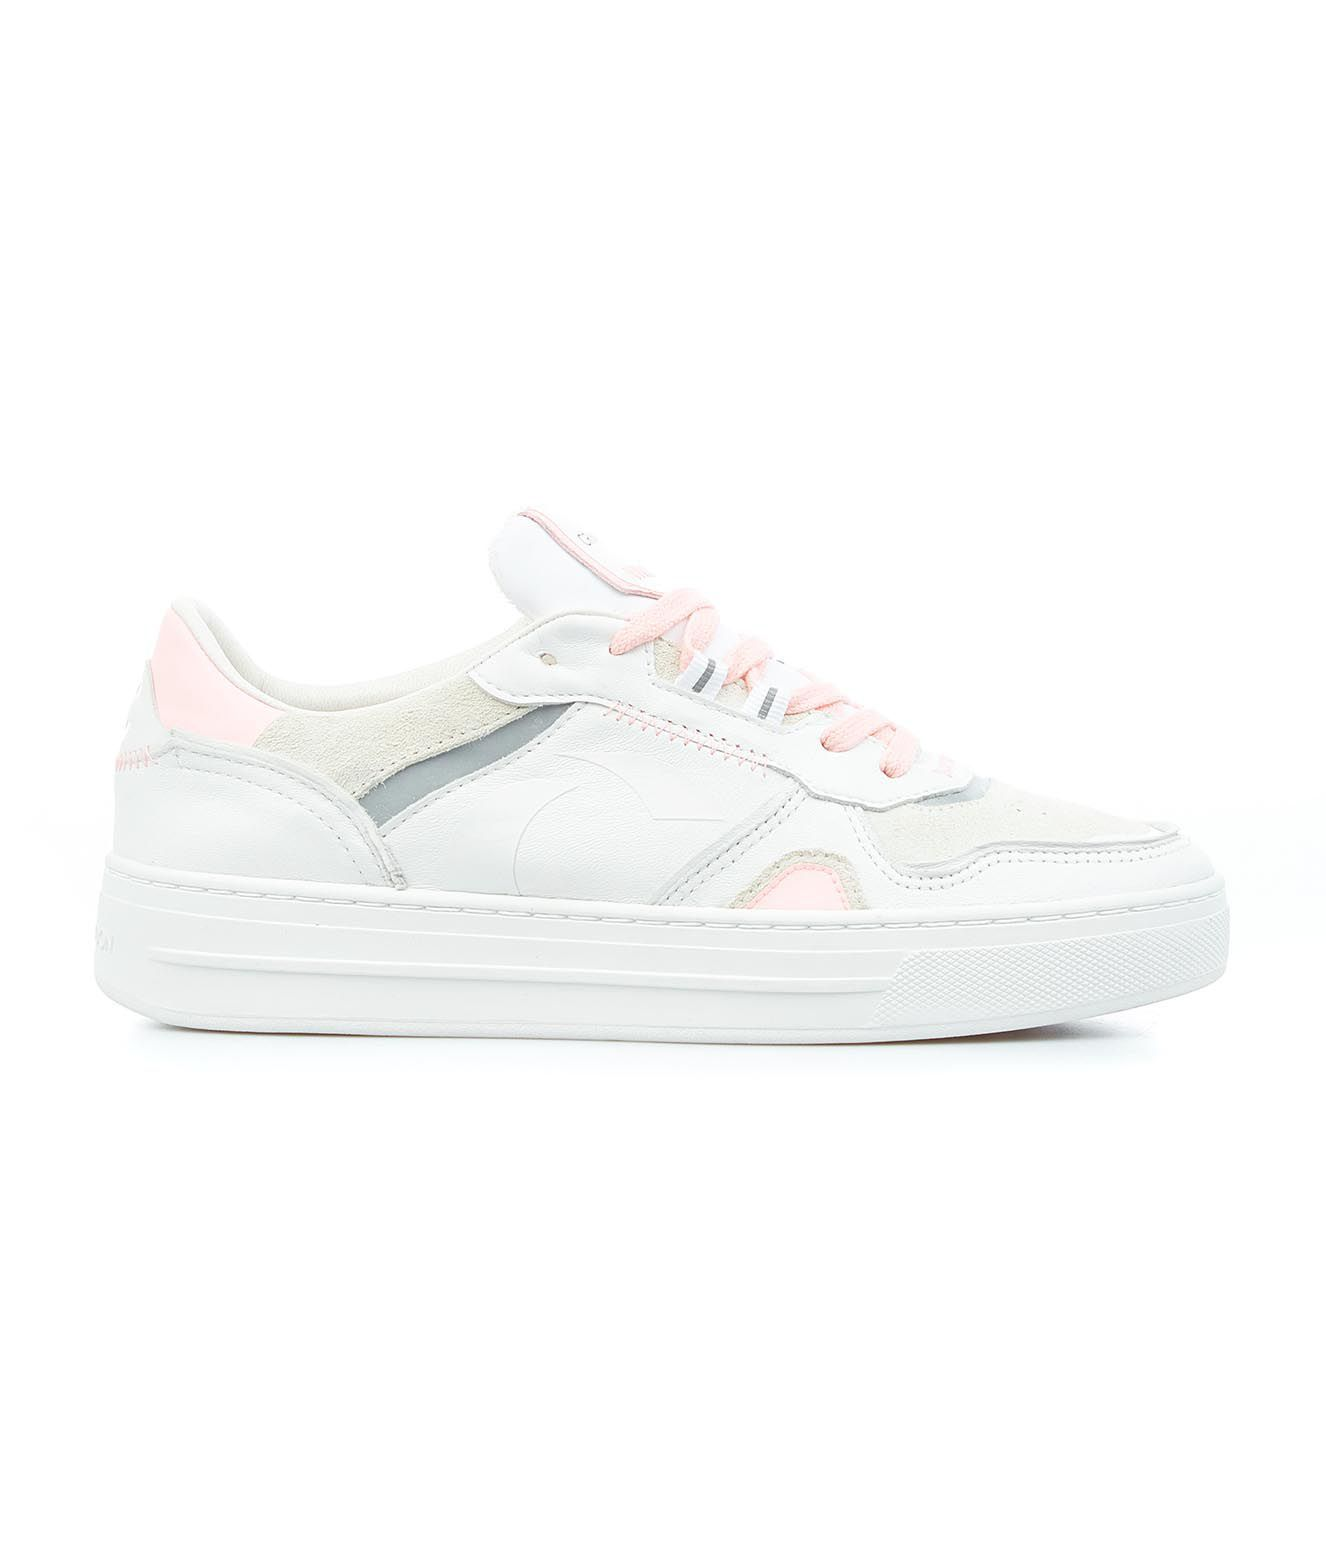 Crime London Low tops CRIME LONDON WOMEN'S 25005PP3B11 WHITE OTHER MATERIALS SNEAKERS